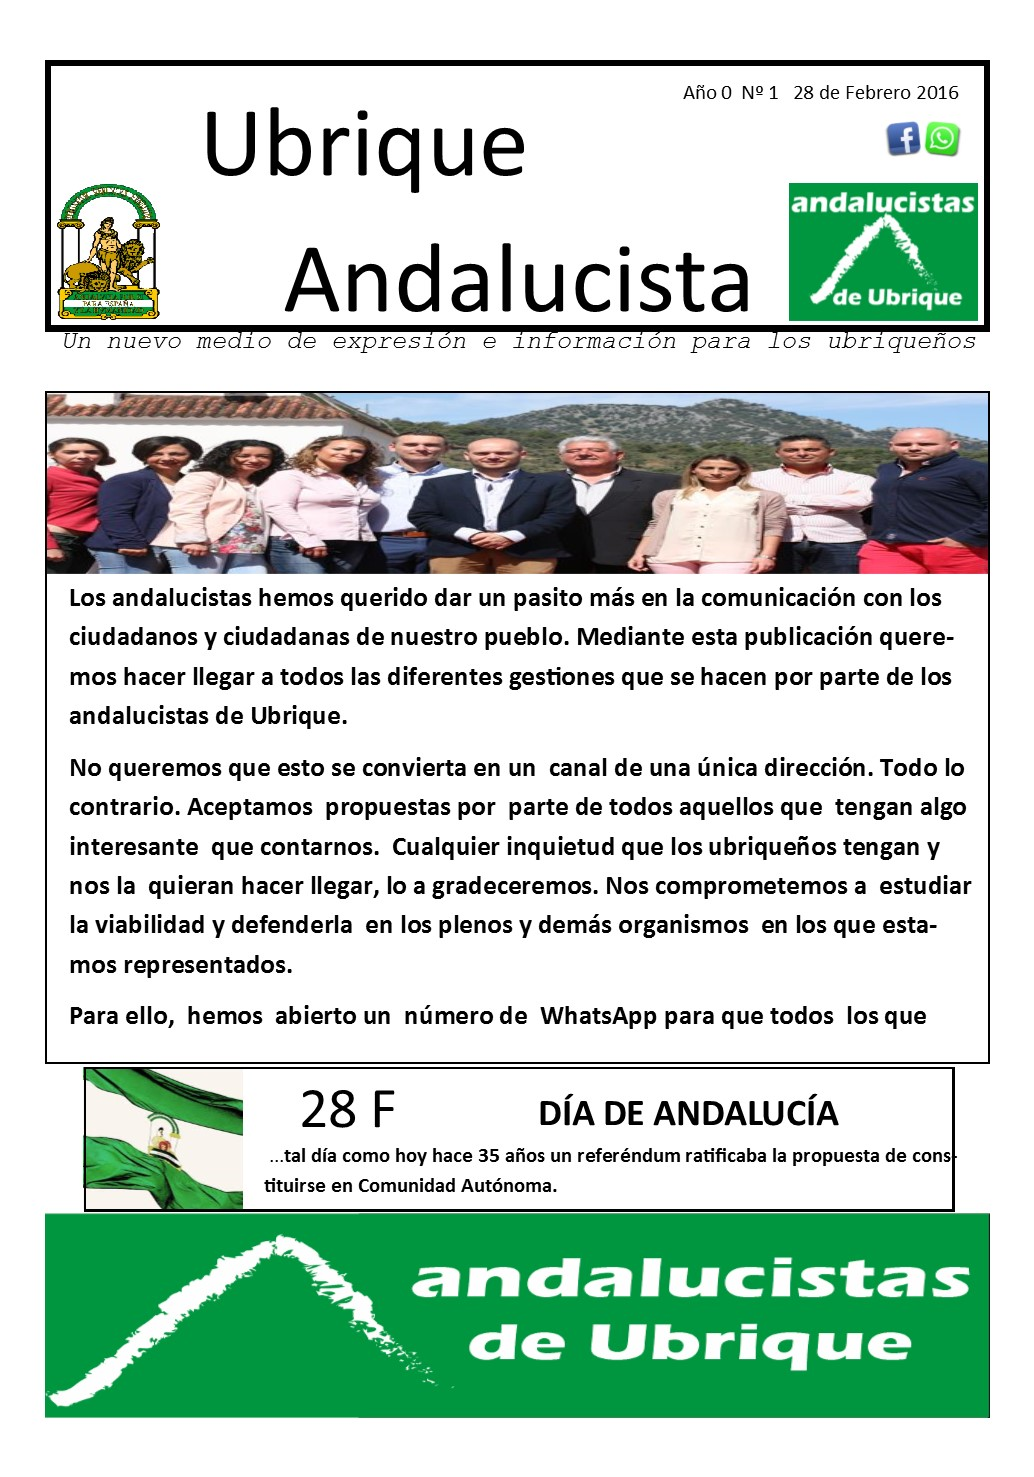 Photo of Boletín Ubrique Andalucista nº 01 (28 Febr. 2016)